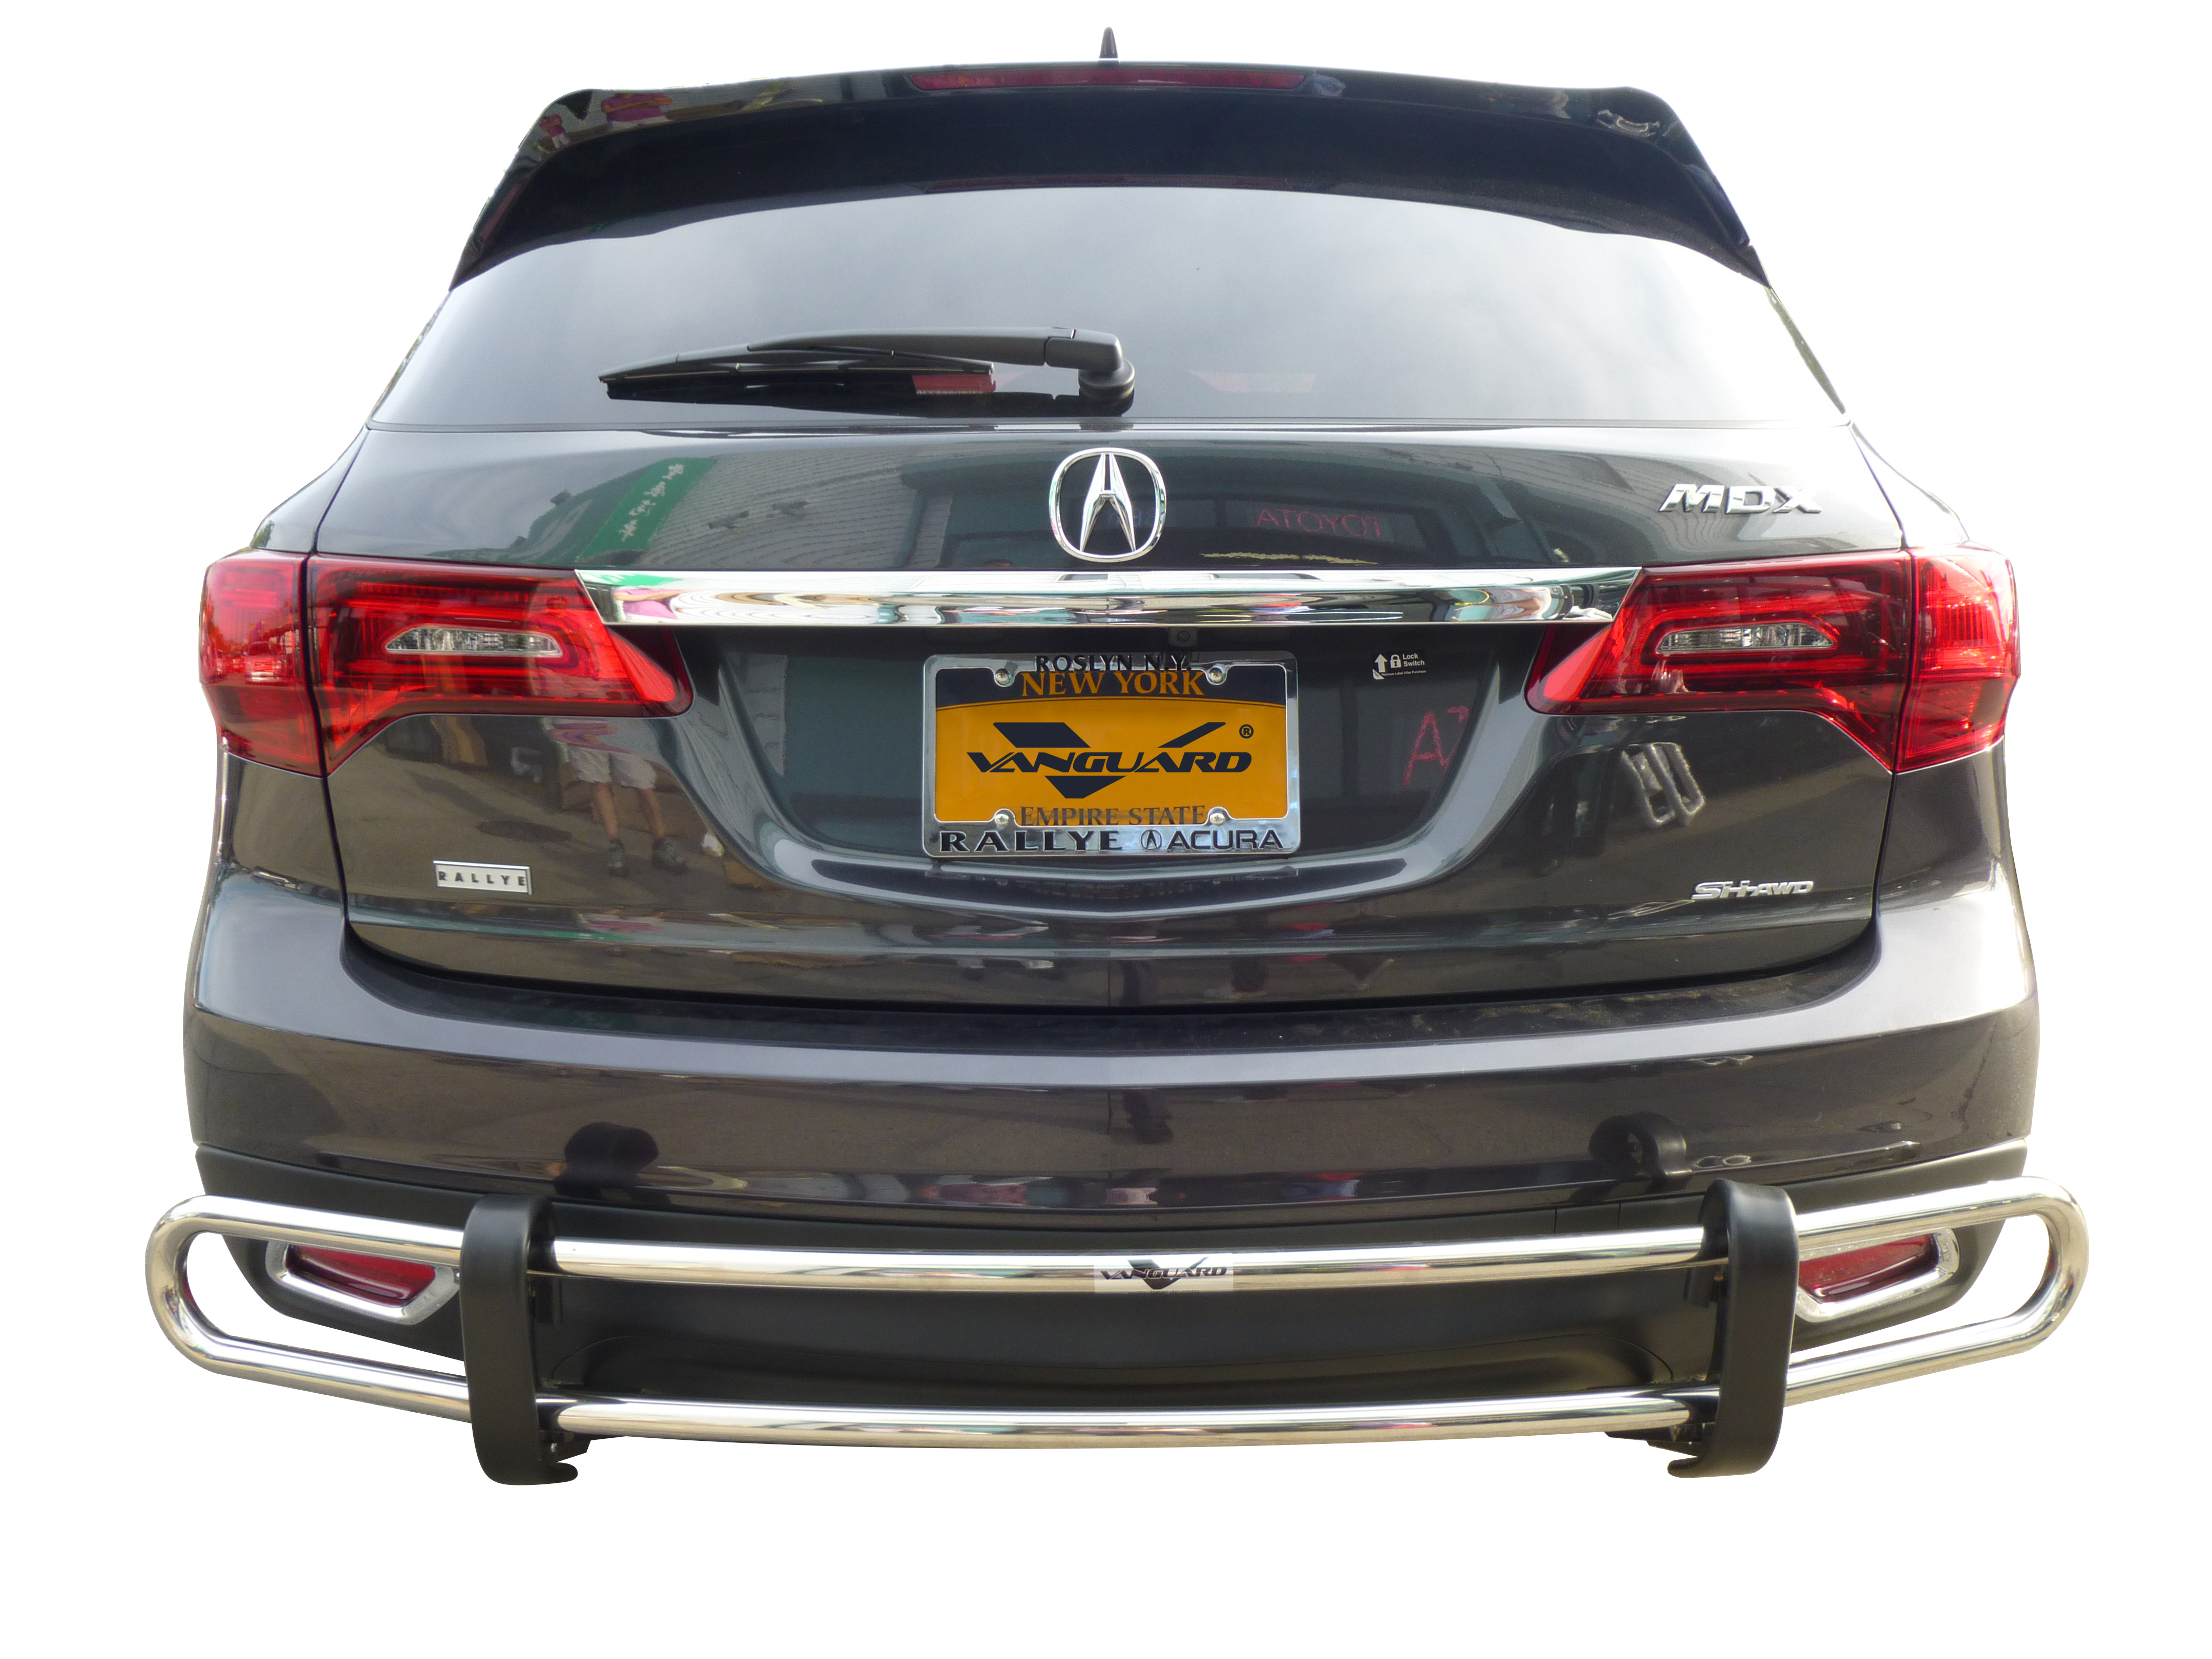 VGRBG-0712-0725SS Stainless Steel Double Tube Style Rear Bumper Guard